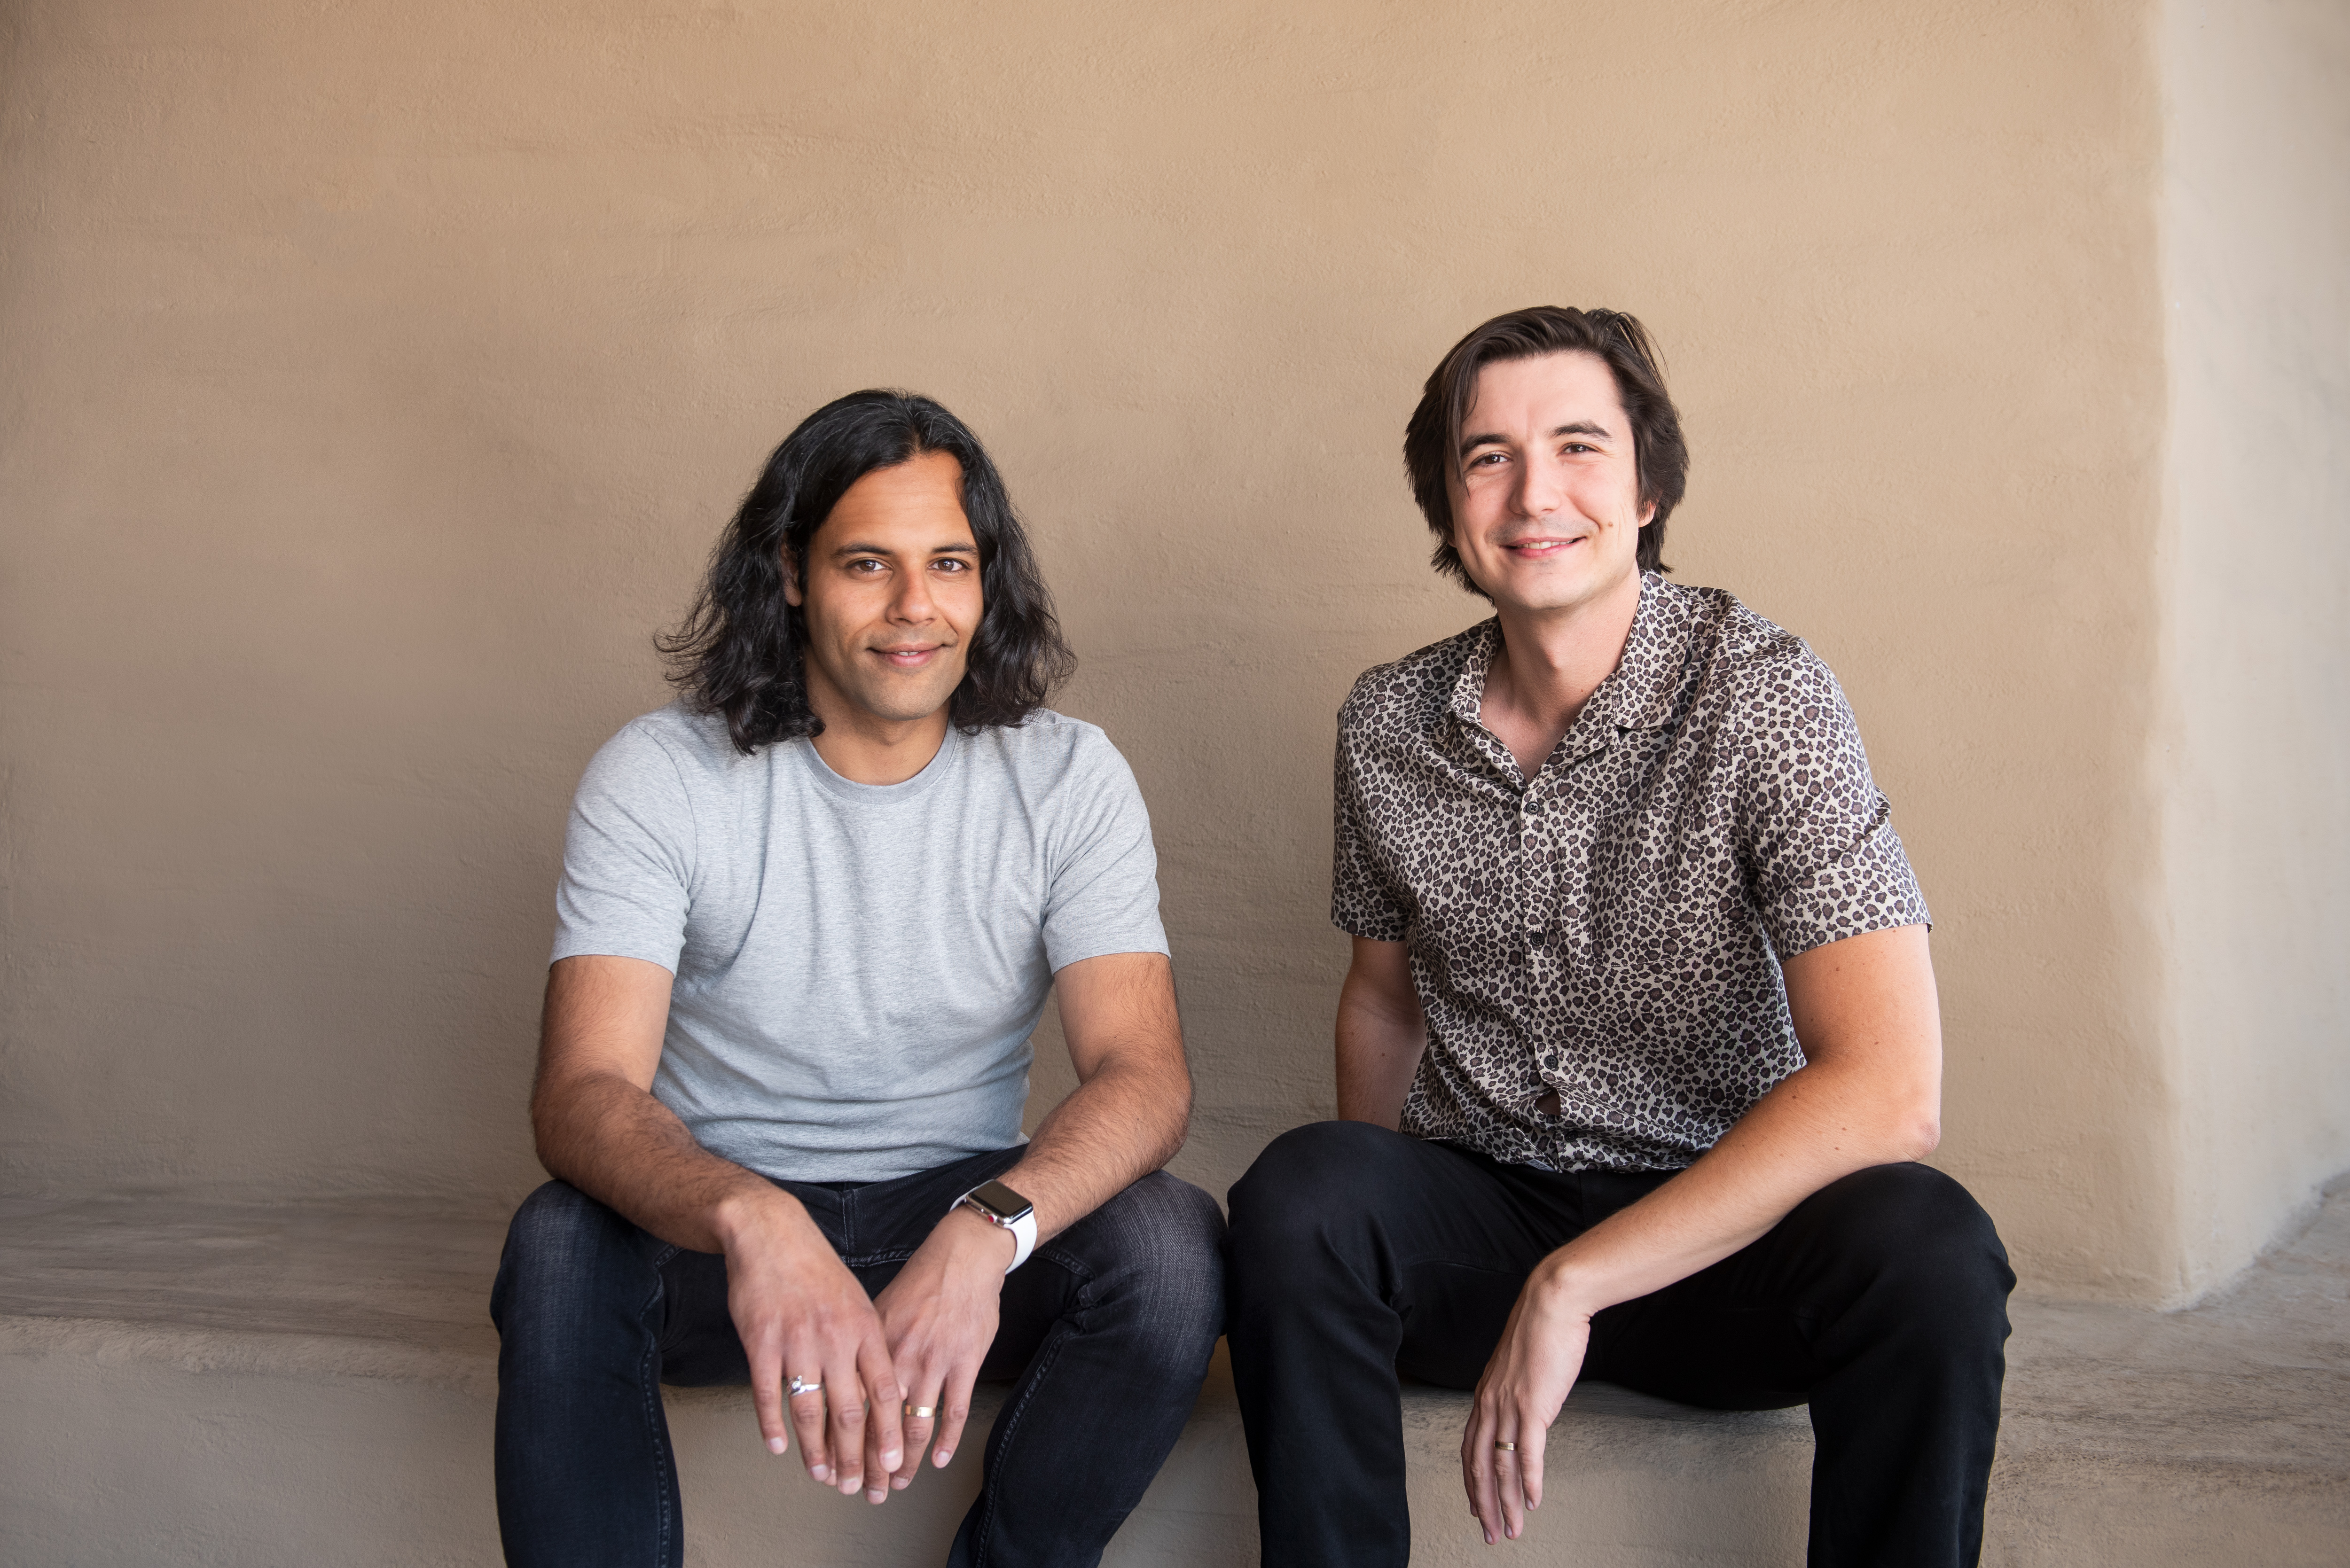 Trading app Robinhood is stealthily recruiting ahead of